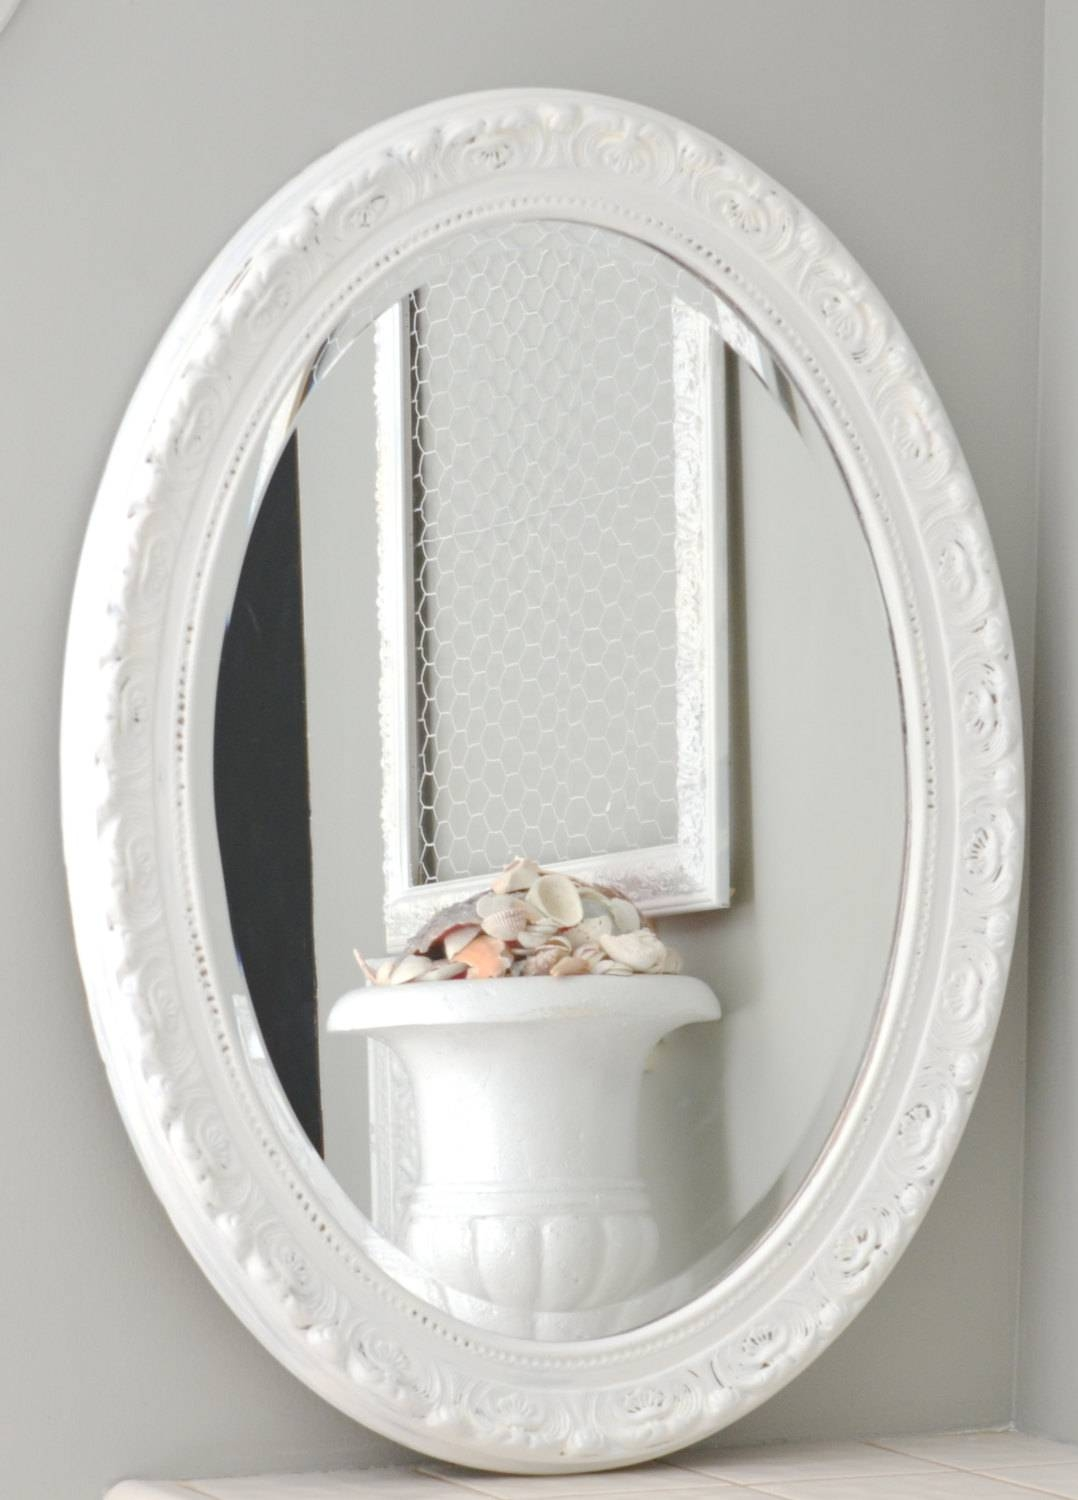 Sold-Shabby Chic White Oval Mirror Large Oval Shabby Chic throughout Oval Shabby Chic Mirrors (Image 22 of 25)